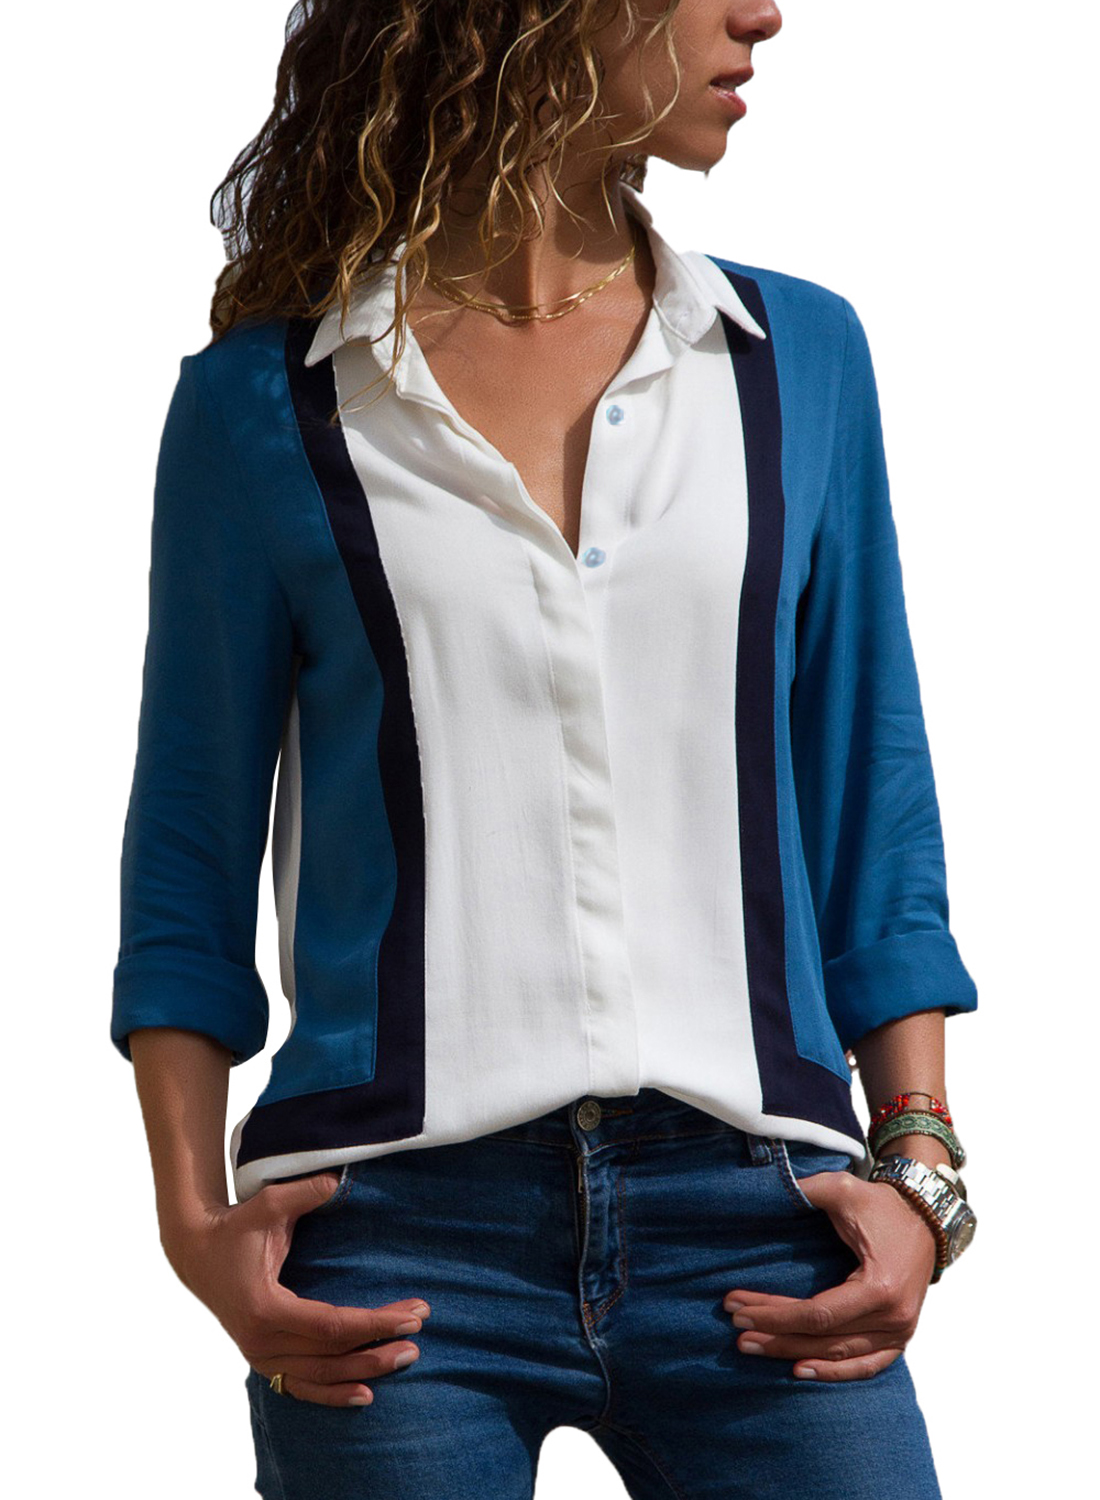 81f1b0152cc Womens White Long Sleeve Button Down Collar Shirt